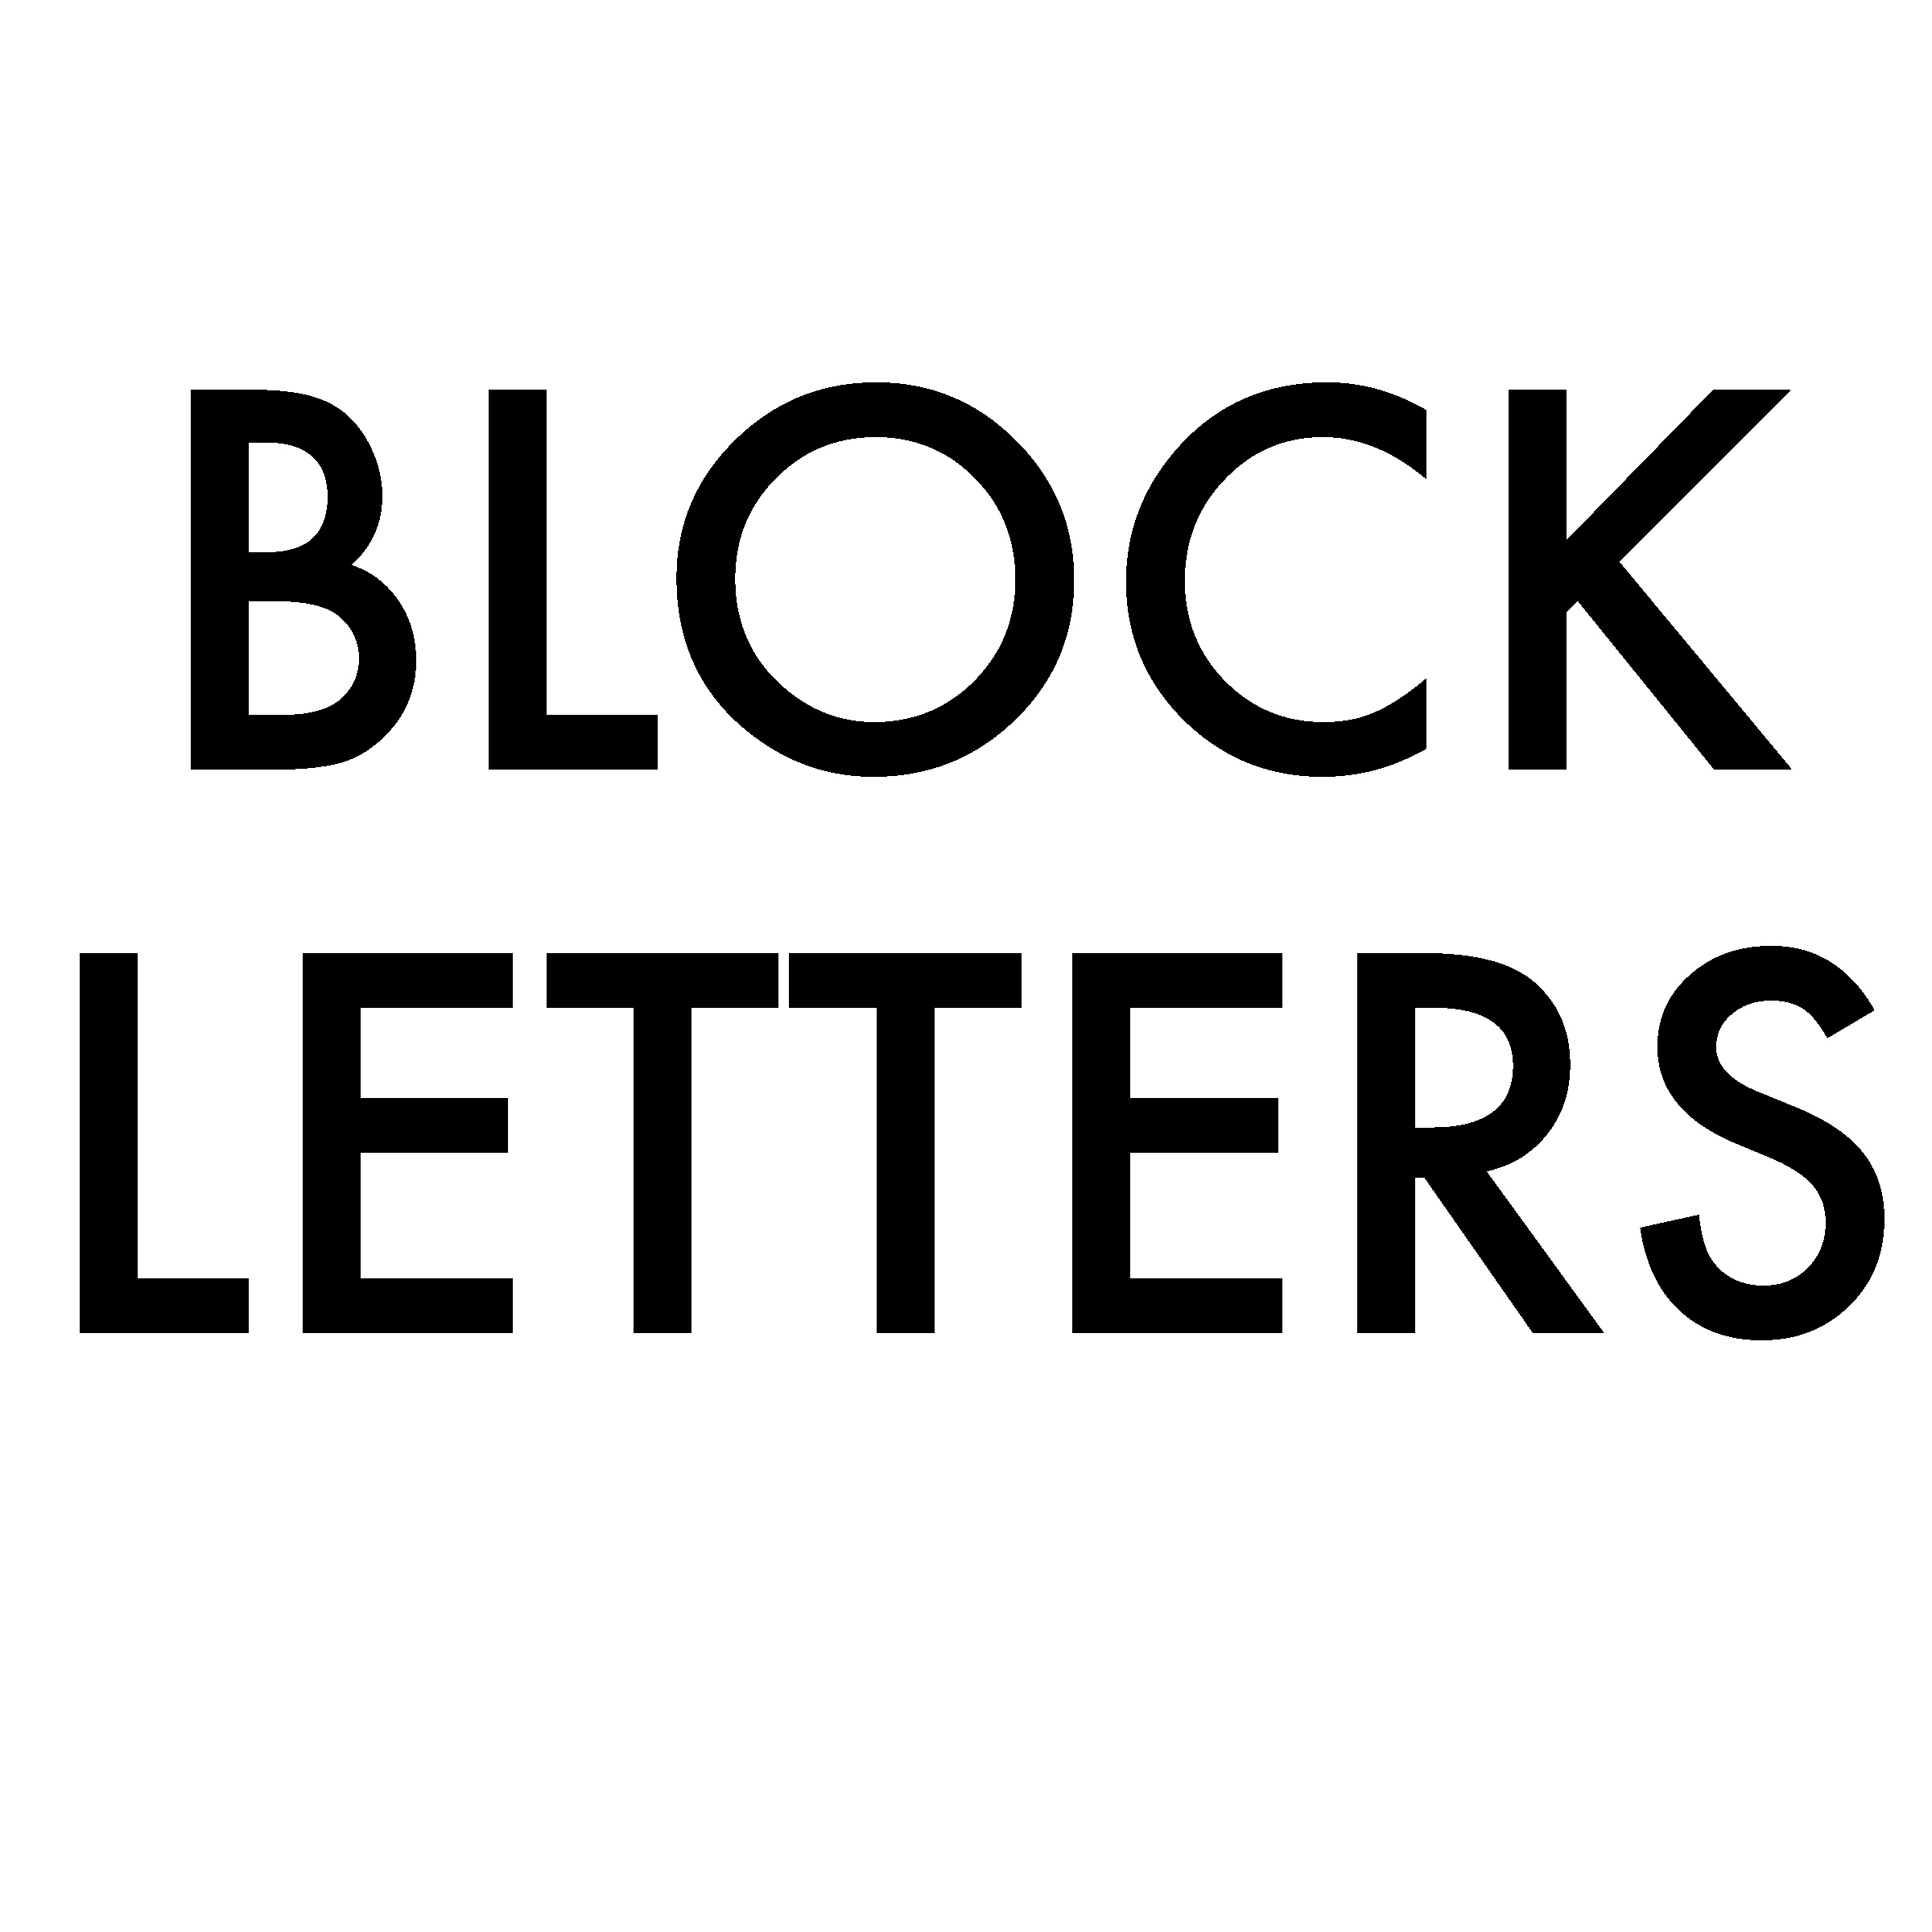 How To Draw Block Letters Handy Hacks